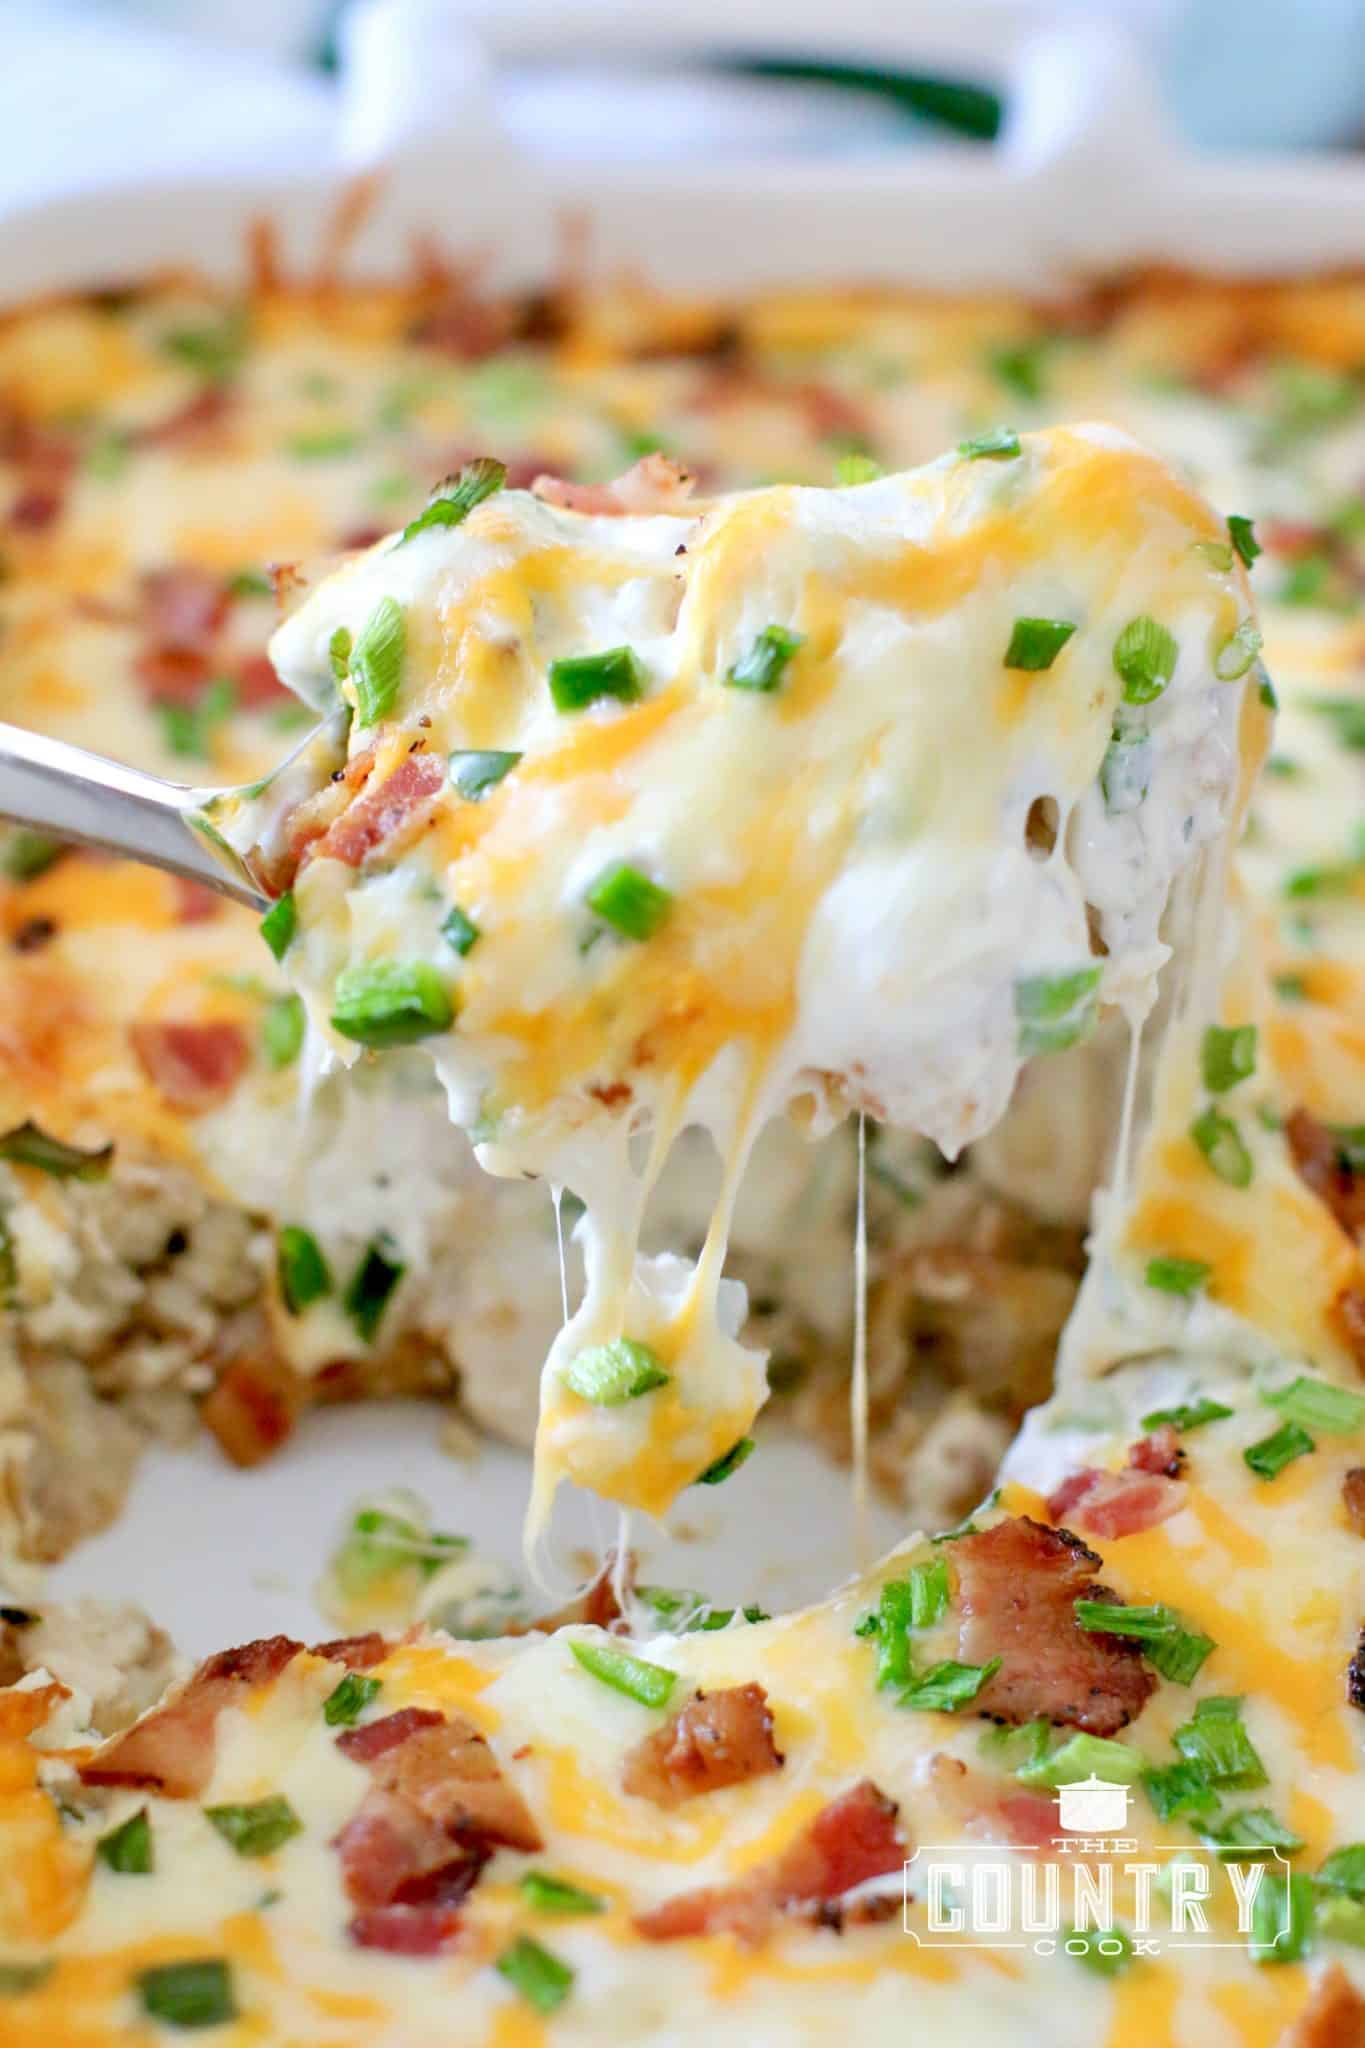 Jalapeno Popper Tater Tot Chicken Casserole shown with a large silver spoon scooping up a serving with melted cheese pulling.